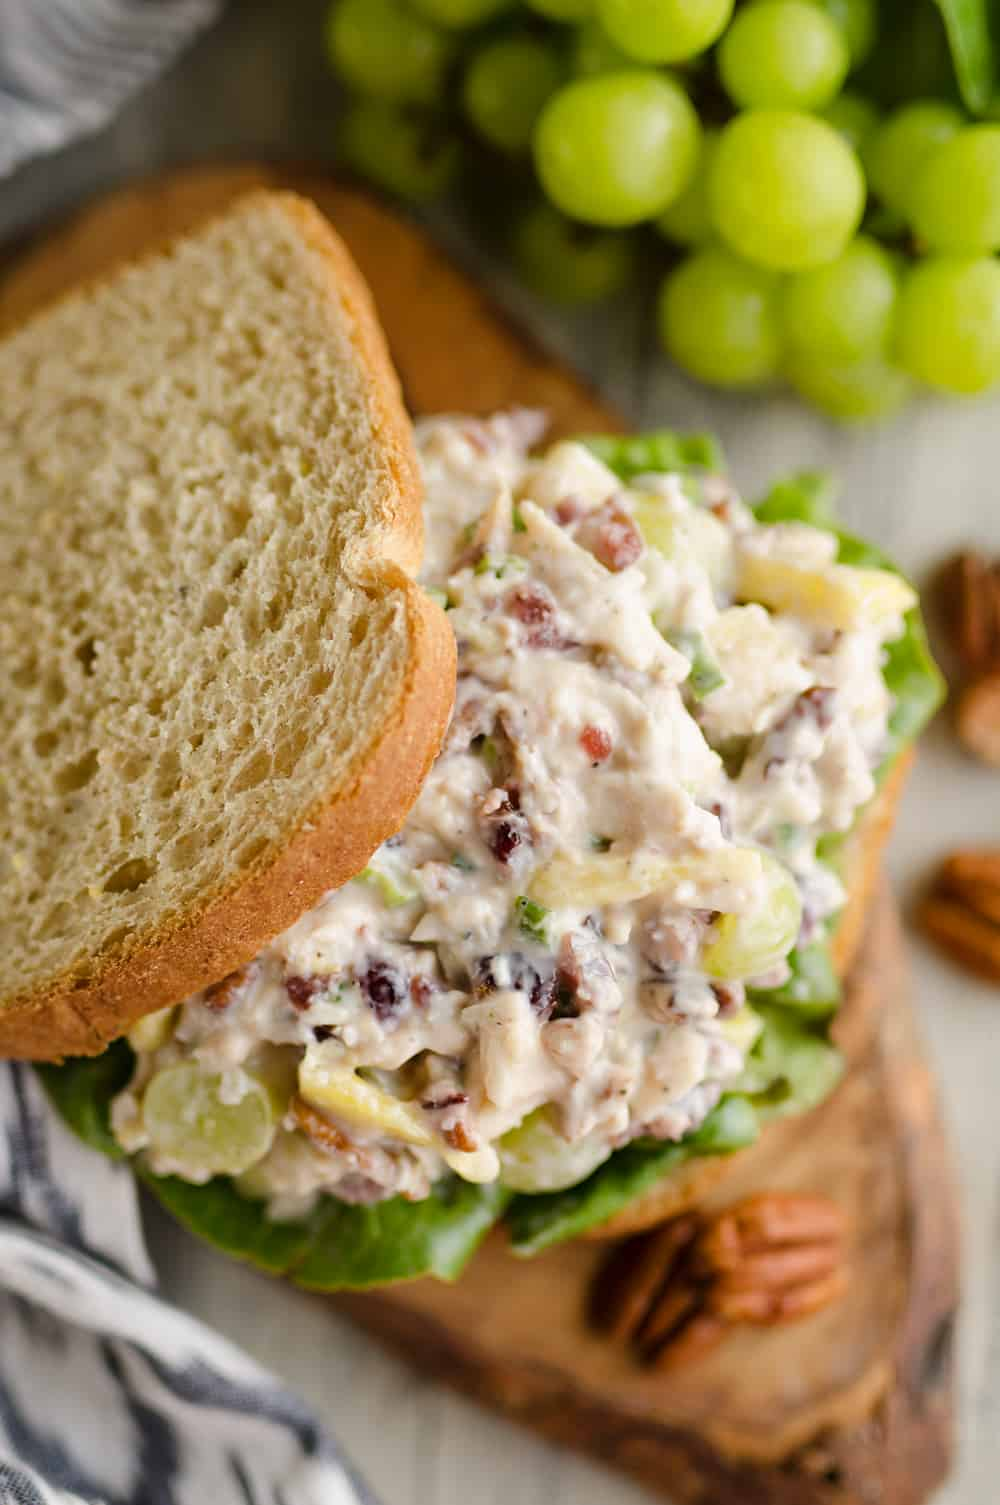 Fruit & Pecan Chicken Salad piled on slices of bread